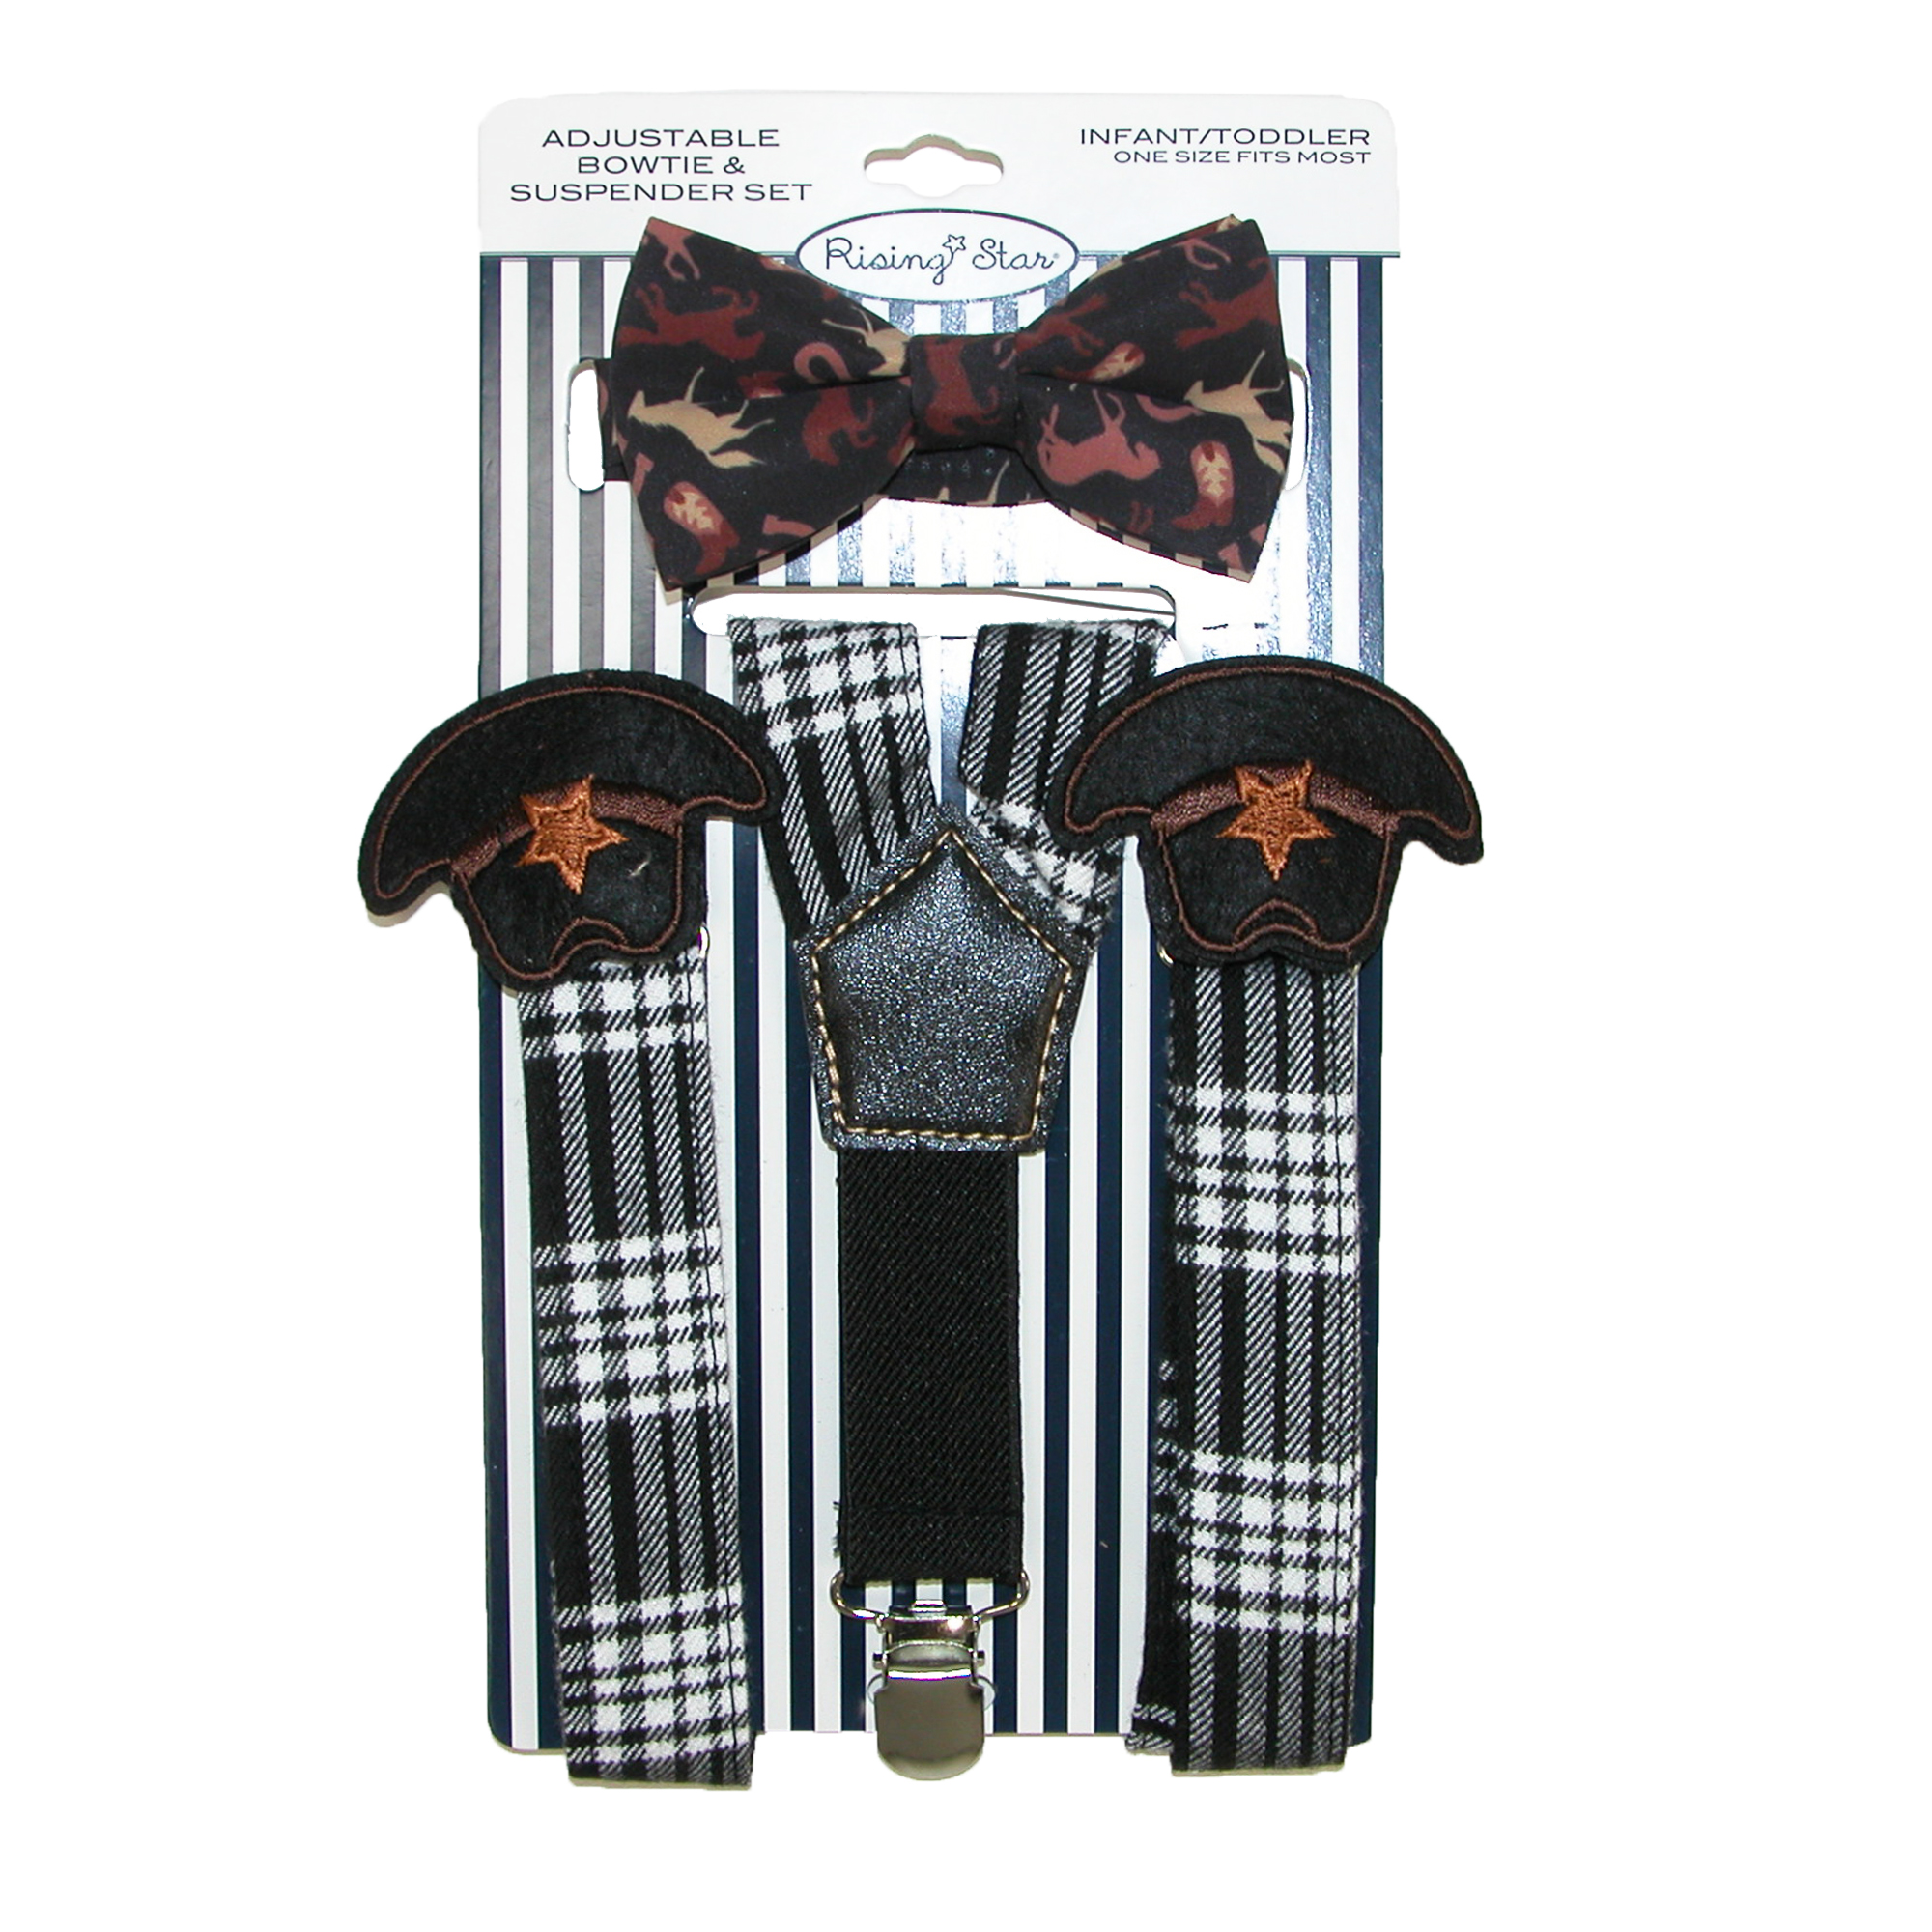 Image of ABG Accessories Infants' Cowboy Hat Suspender and Bow Tie Set